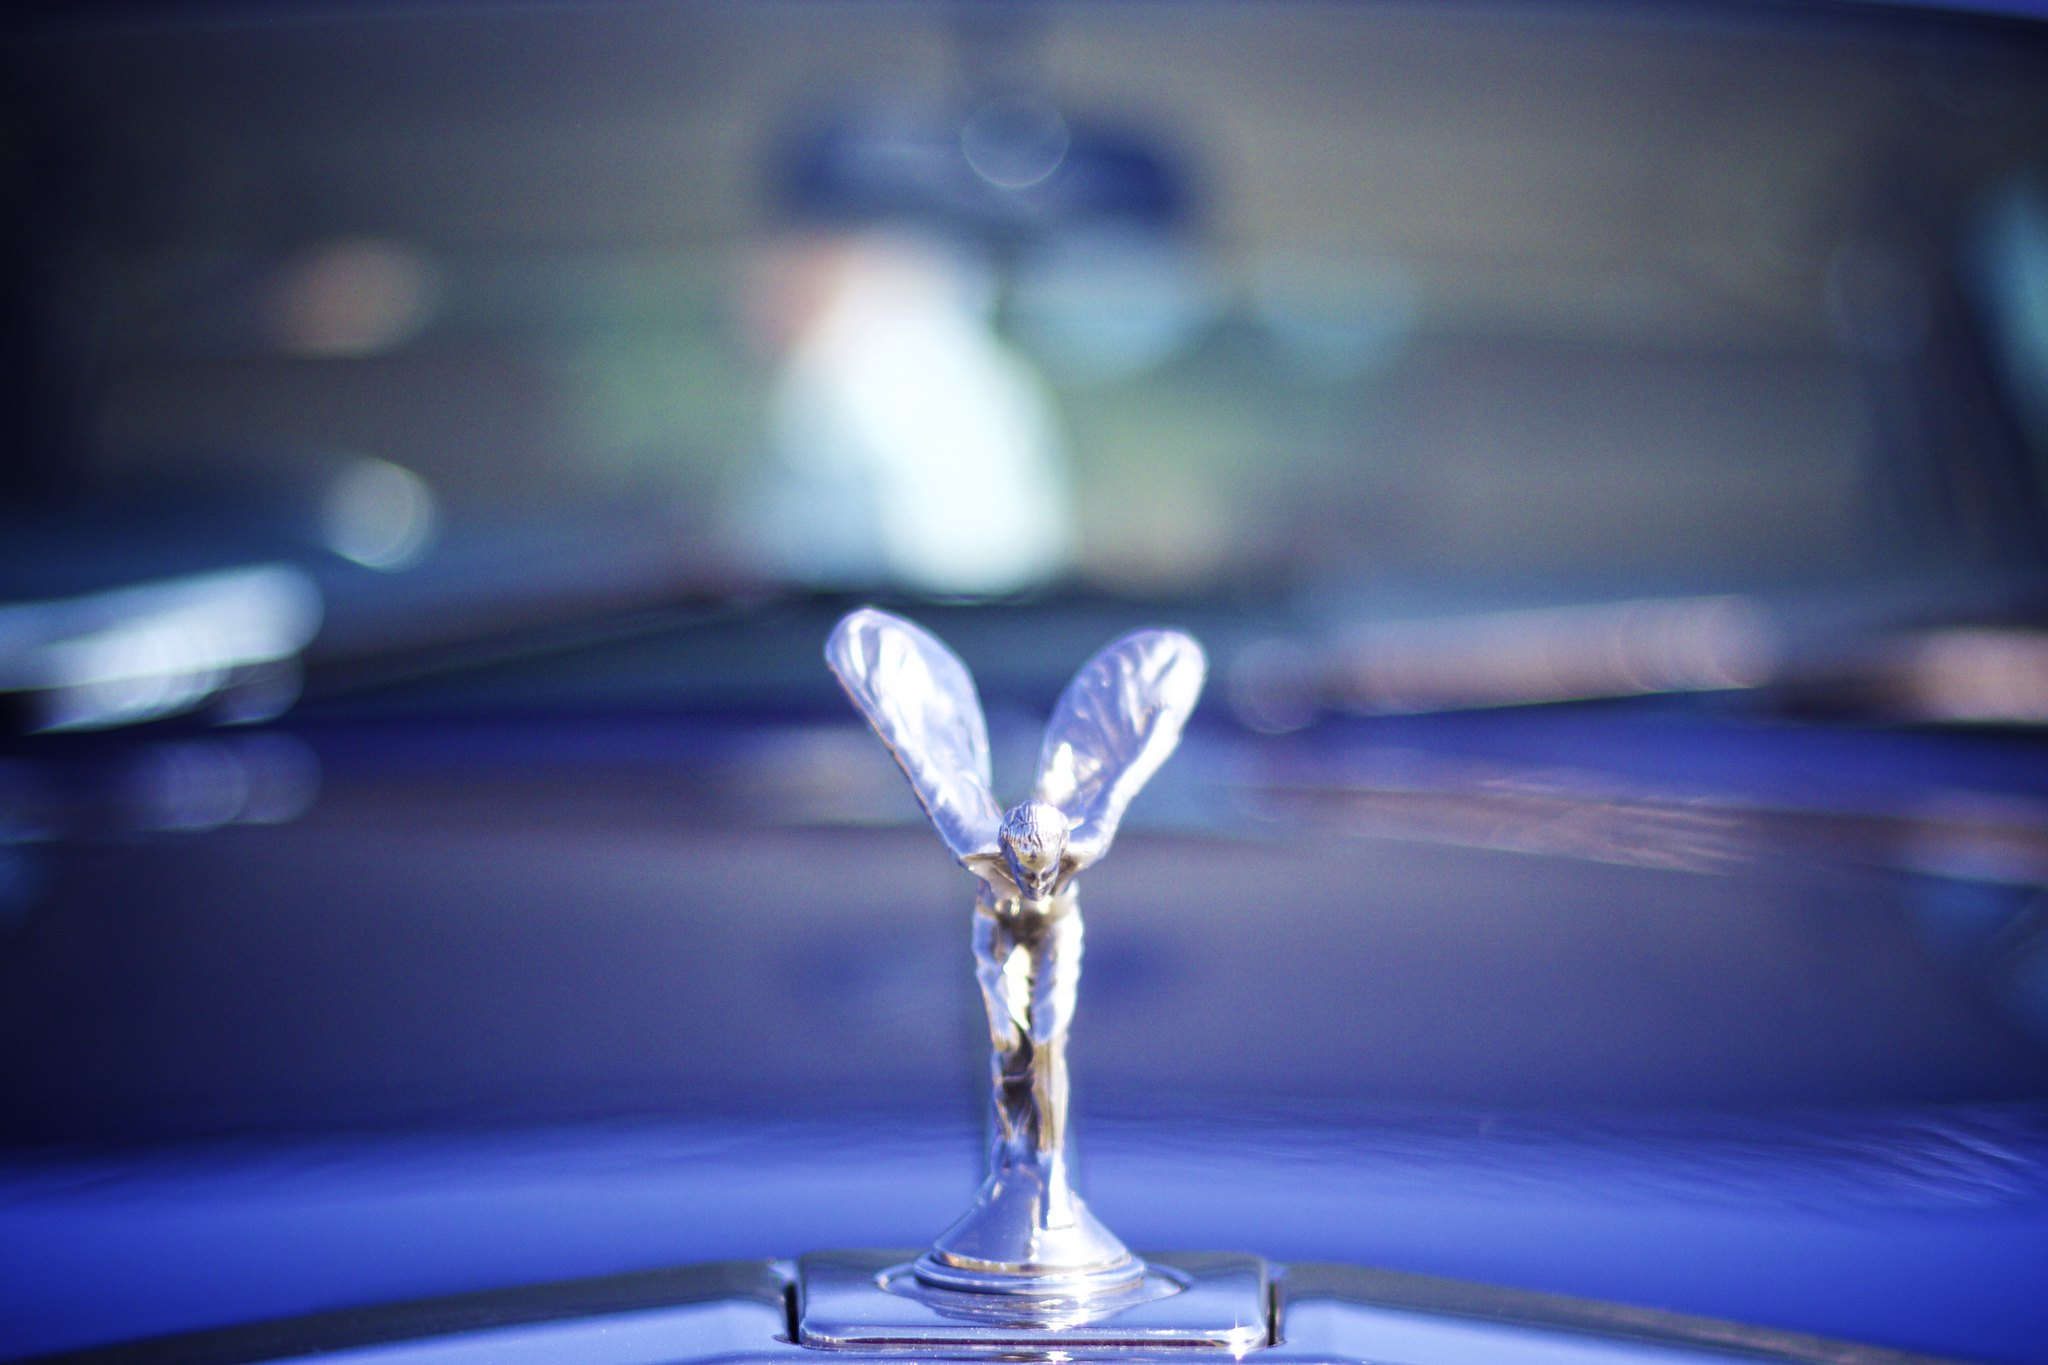 Spirit of Ecstasy by Charanjit Chana